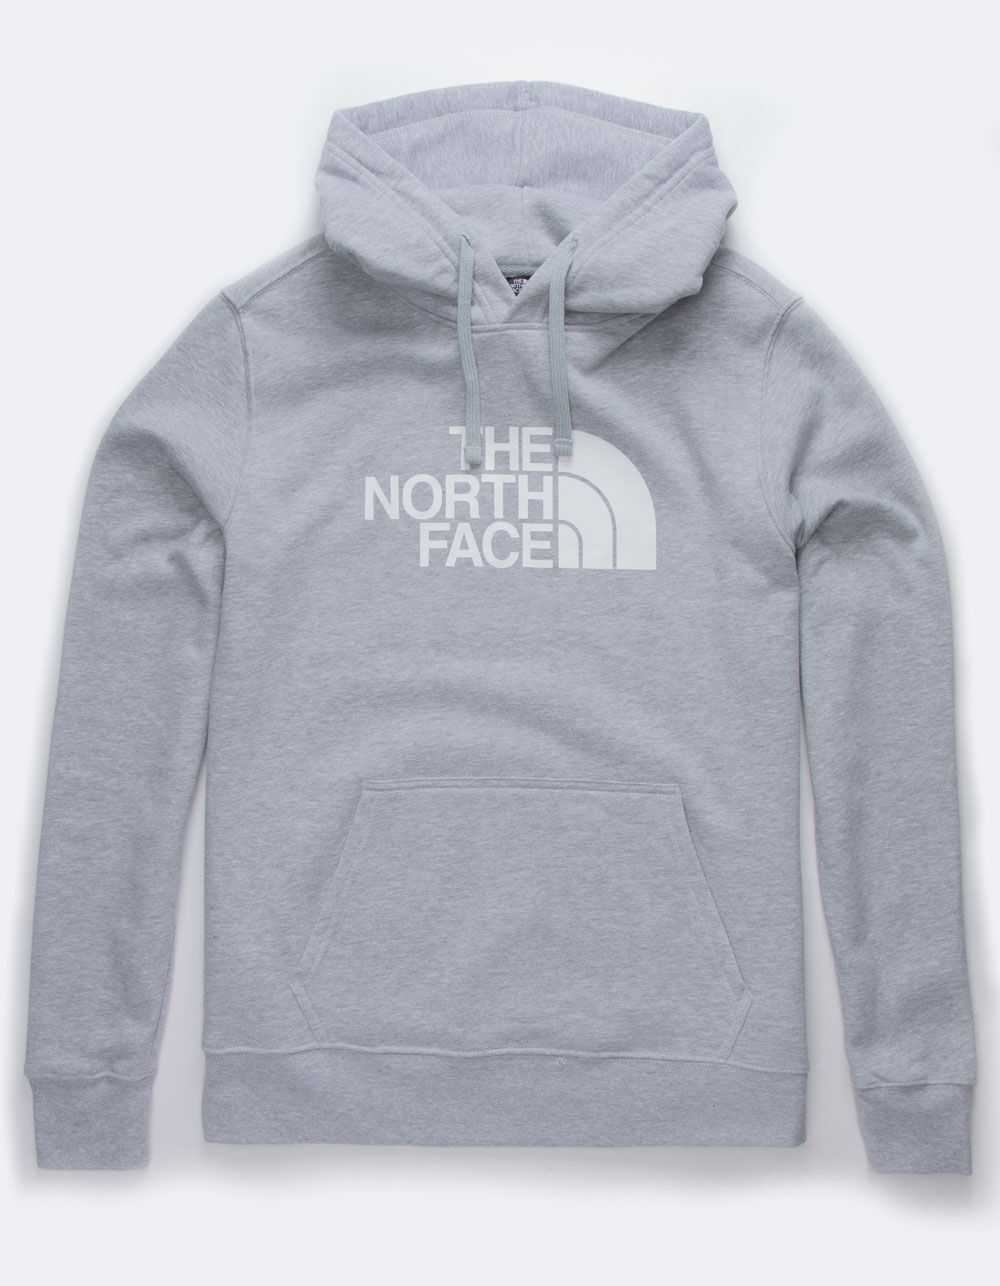 THE NORTH FACE Half Dome Heather Gray Hoodie